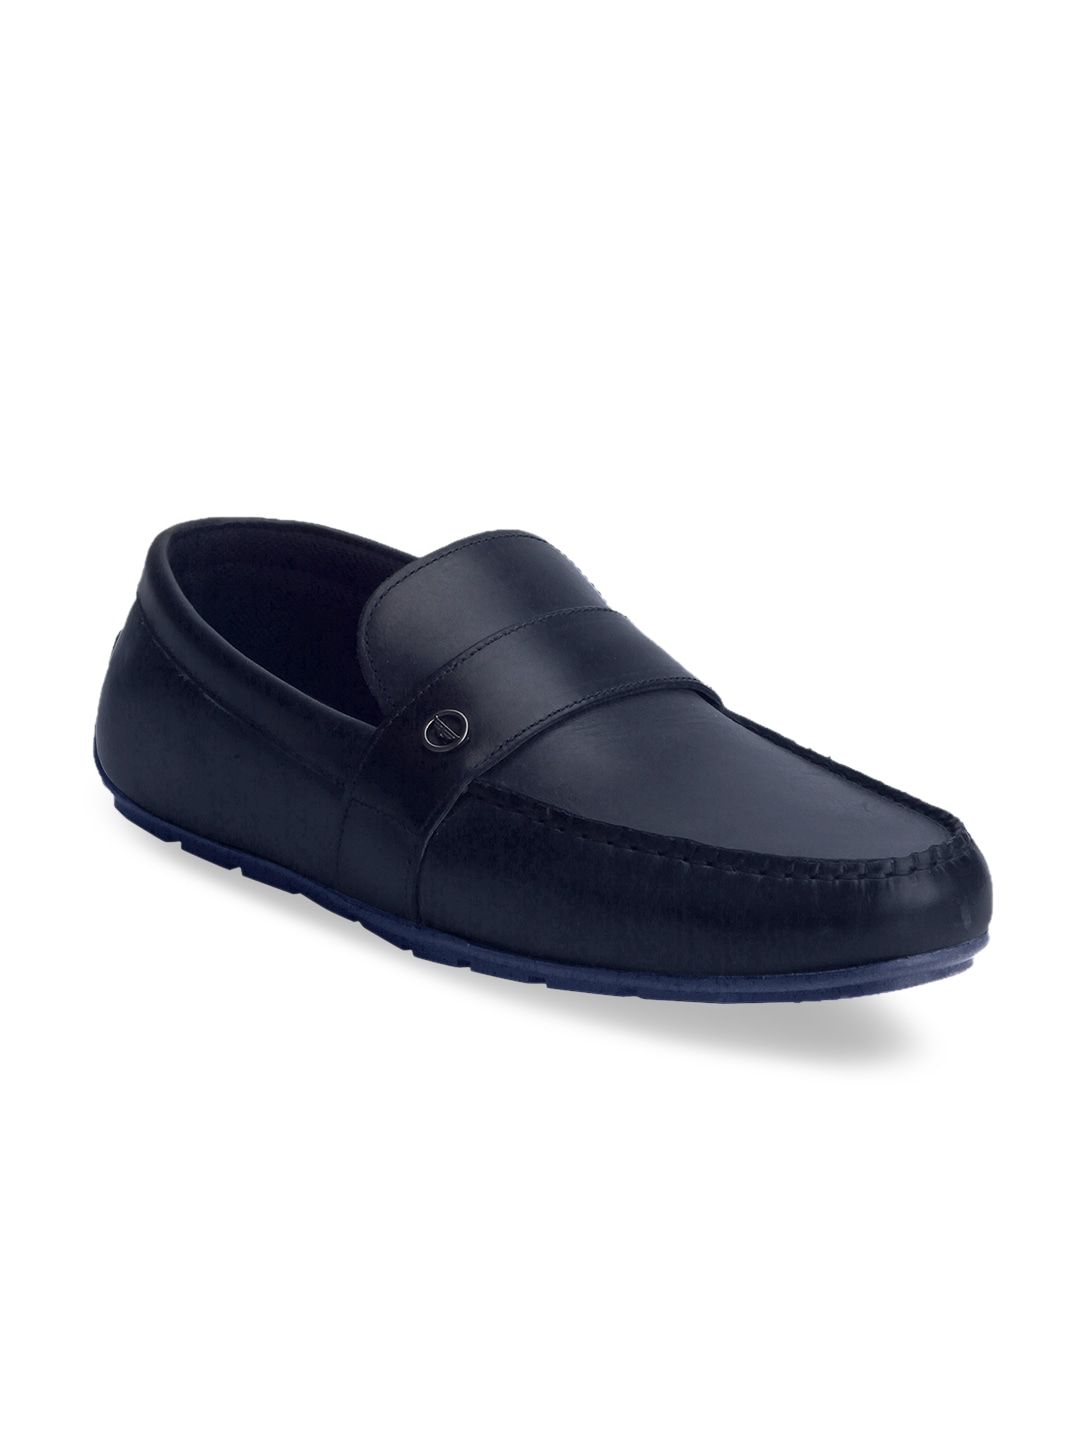 Navy Blue Solid Semiformal Leather Loafers